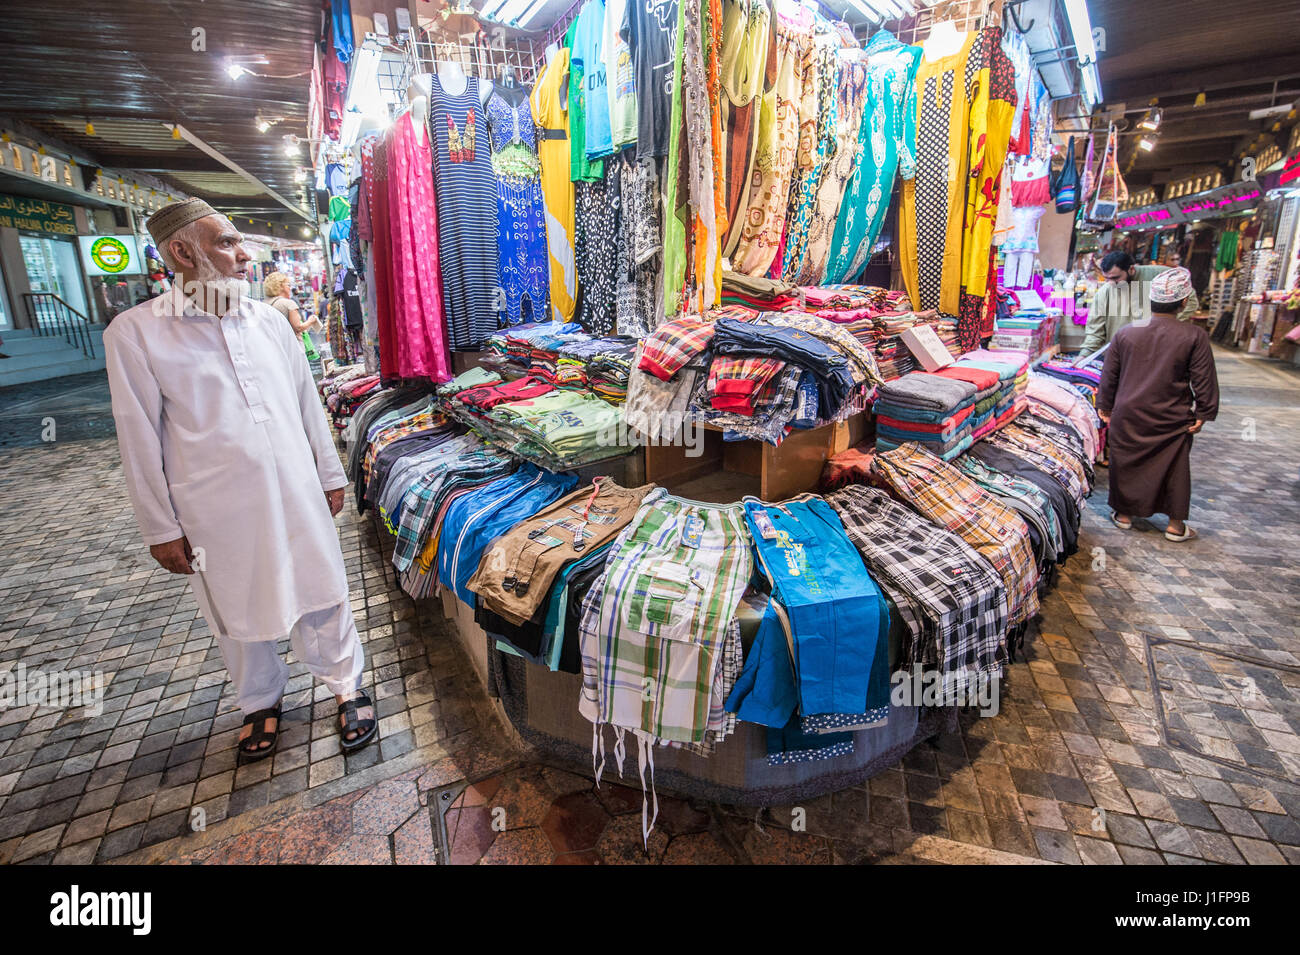 Muscat, Oman - Souq Muttrah Man looks at clothing for sale